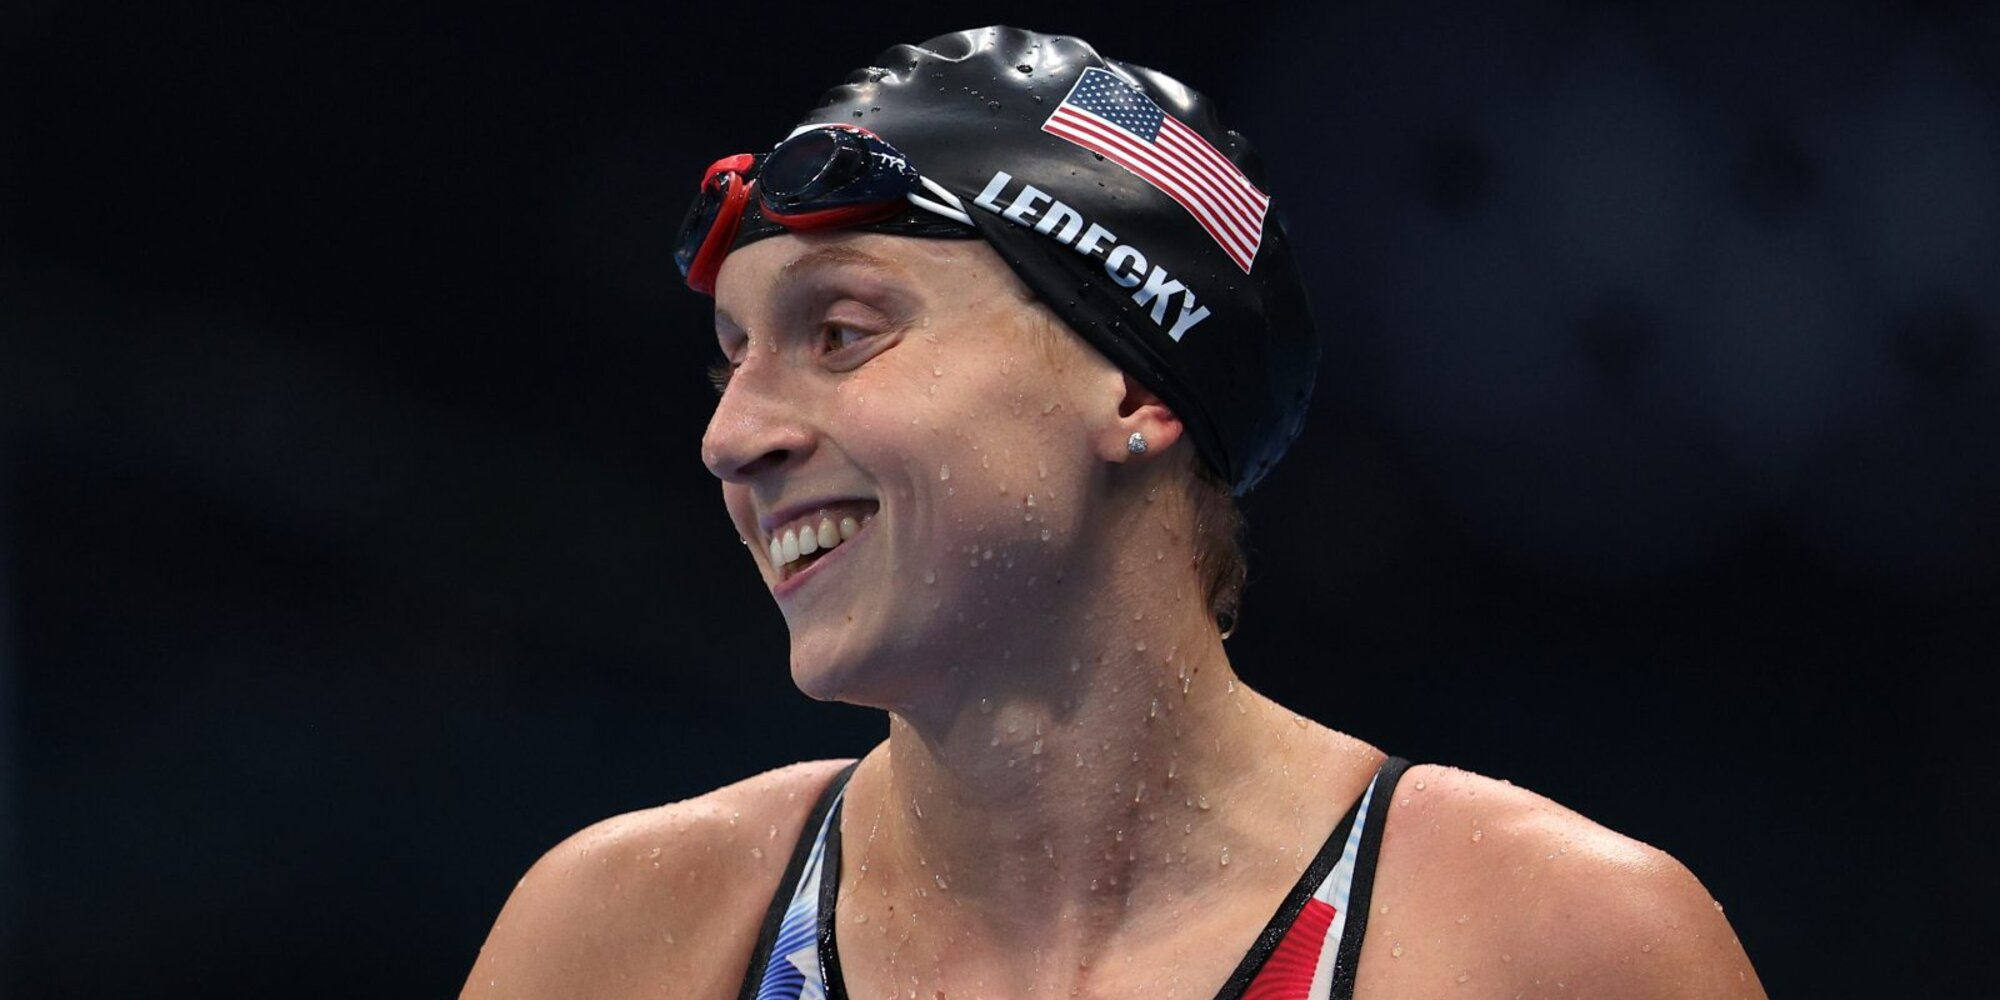 Katie Ledecky Makes History as First Olympic Champion in Women's 1500m Freestyle, Wins First Gold in Tokyo